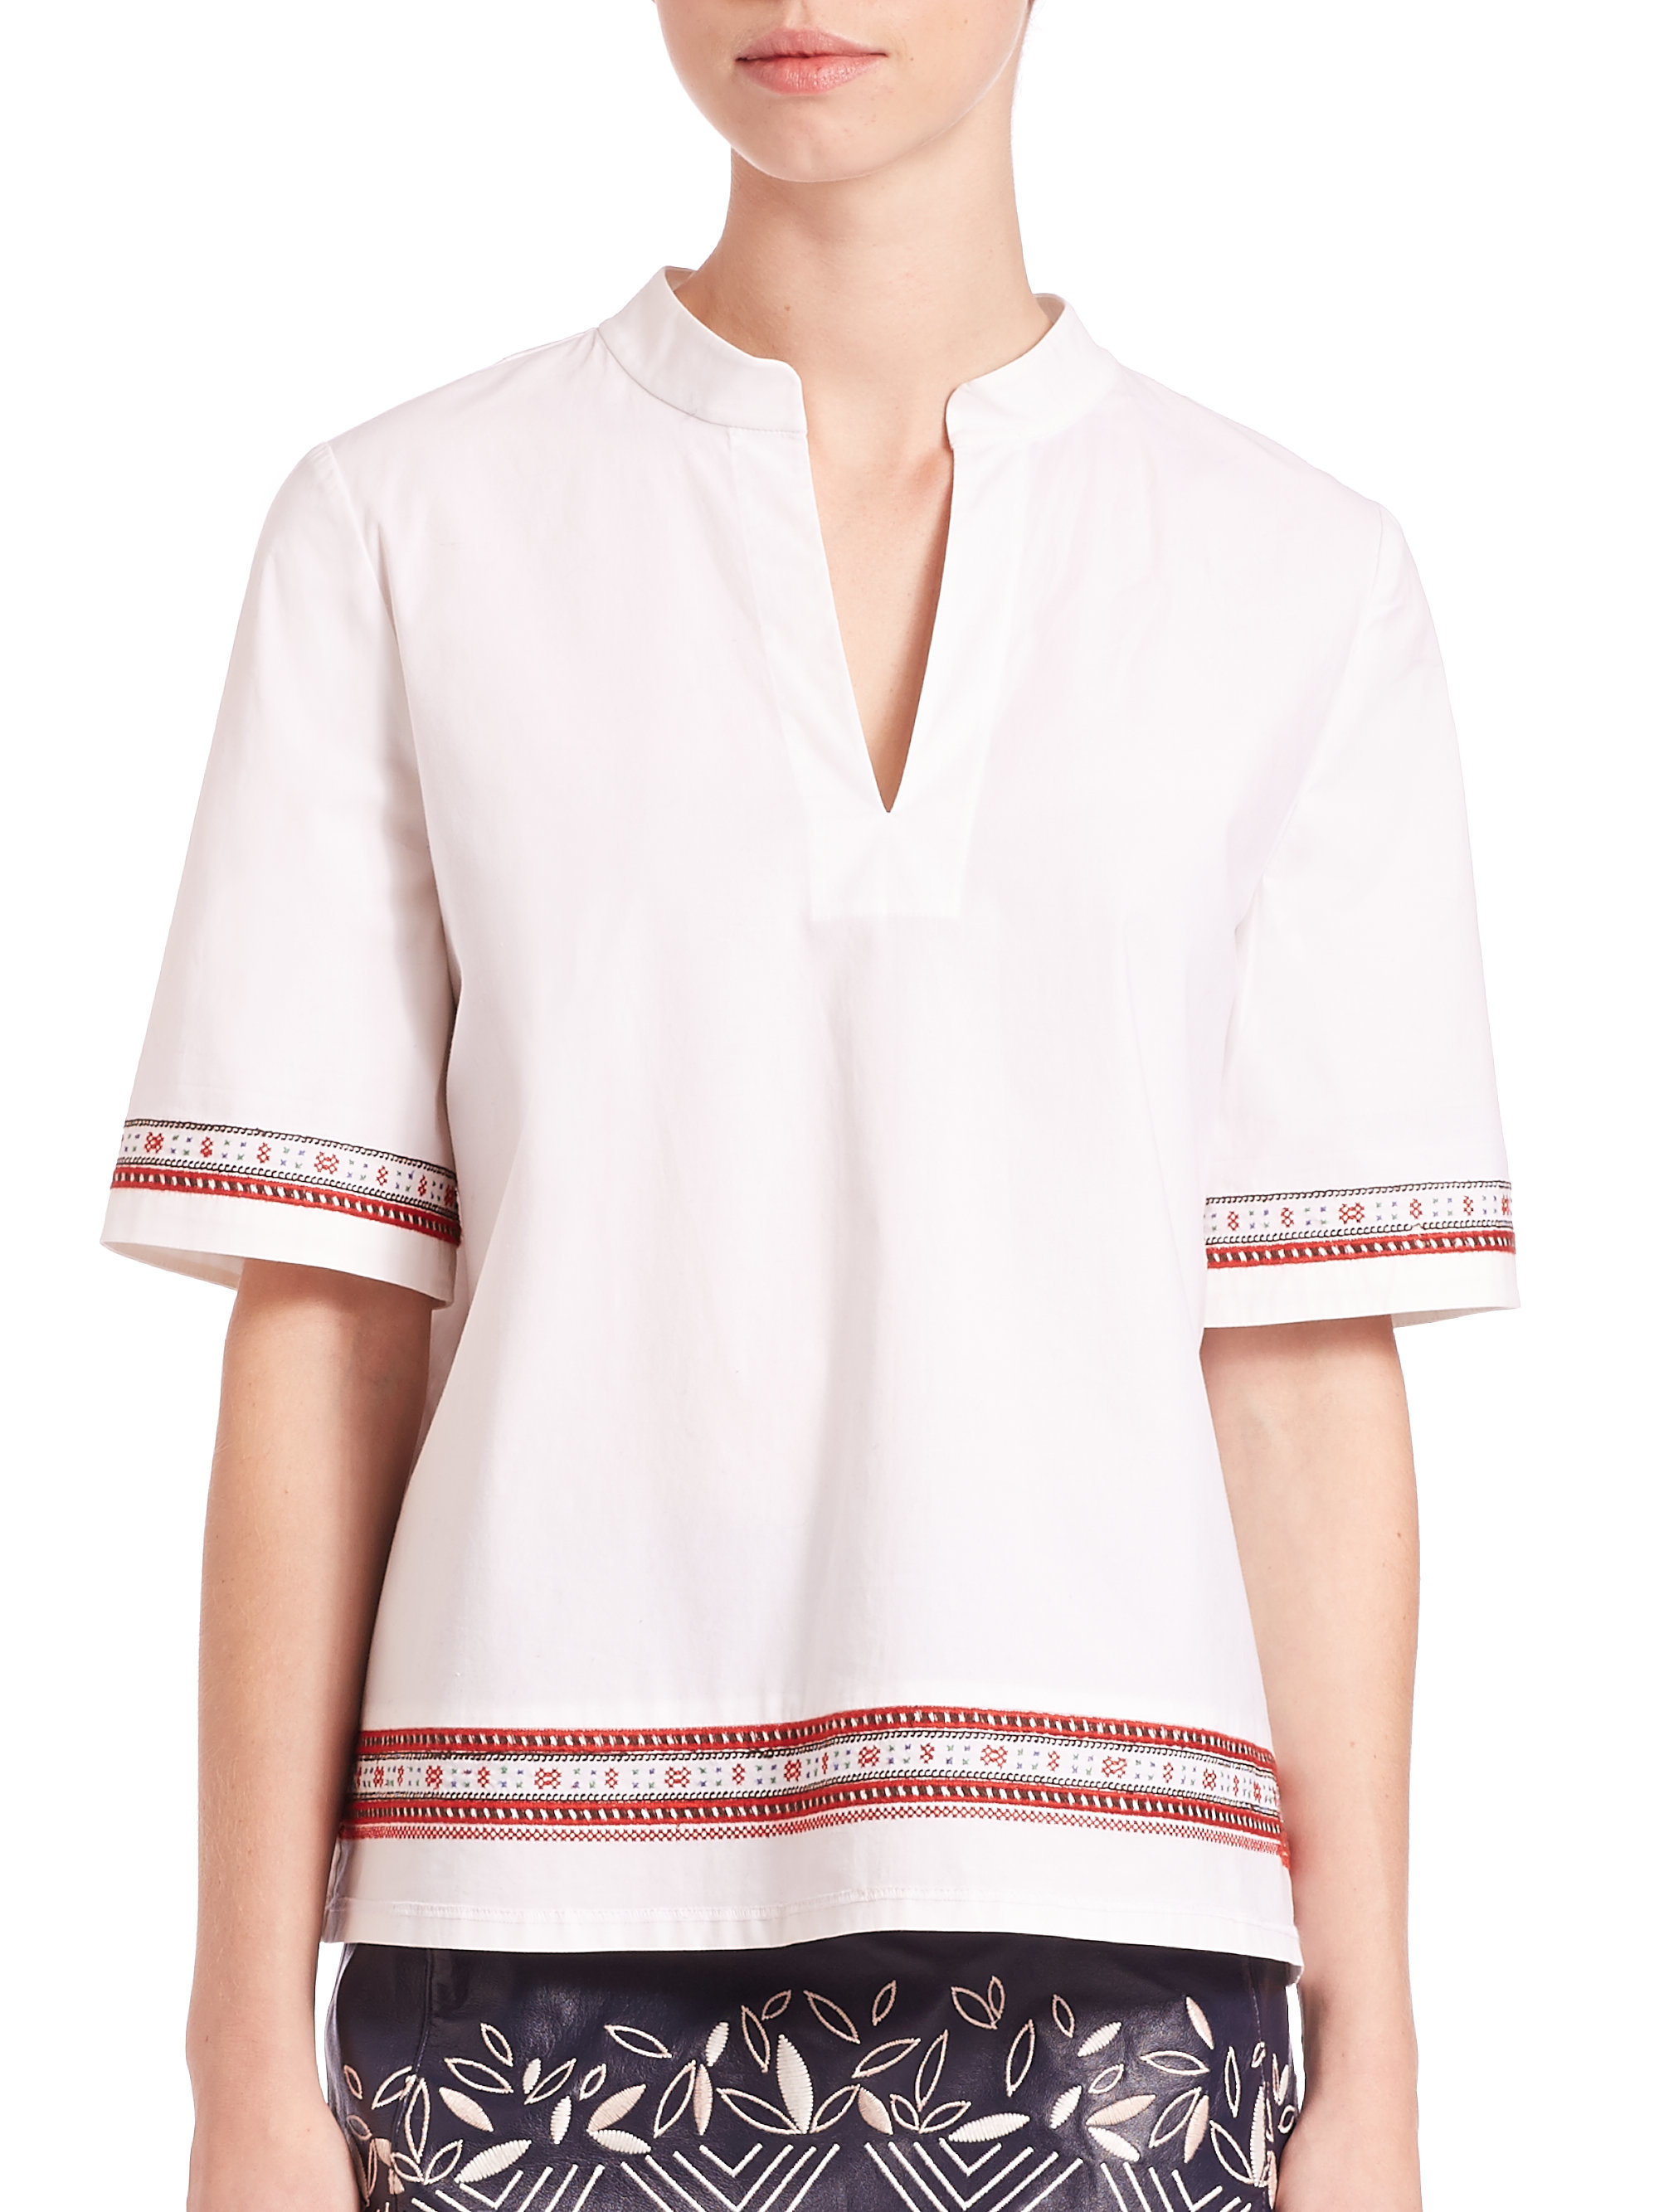 Discount Visit New Tory Burch Woman Button-detailed Stretch Cotton-poplin Top White Size 0 Tory Burch Buy Cheap Cheapest Price Clearance Hot Sale PpVNiN